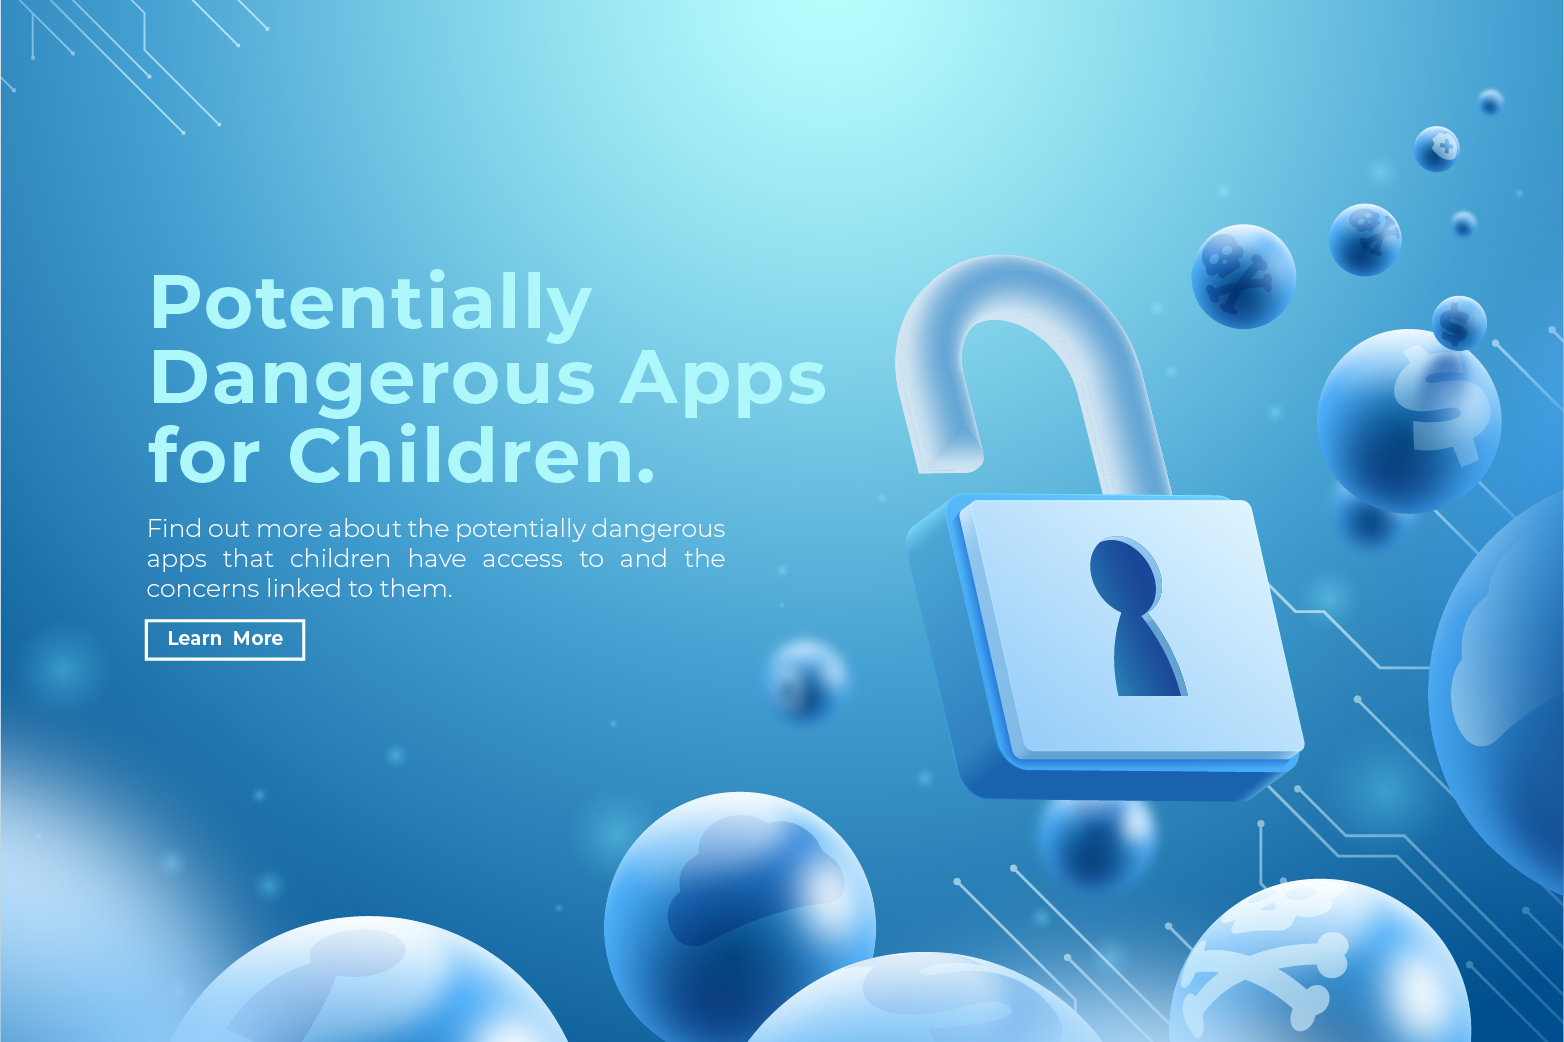 Potentially Dangerous Apps